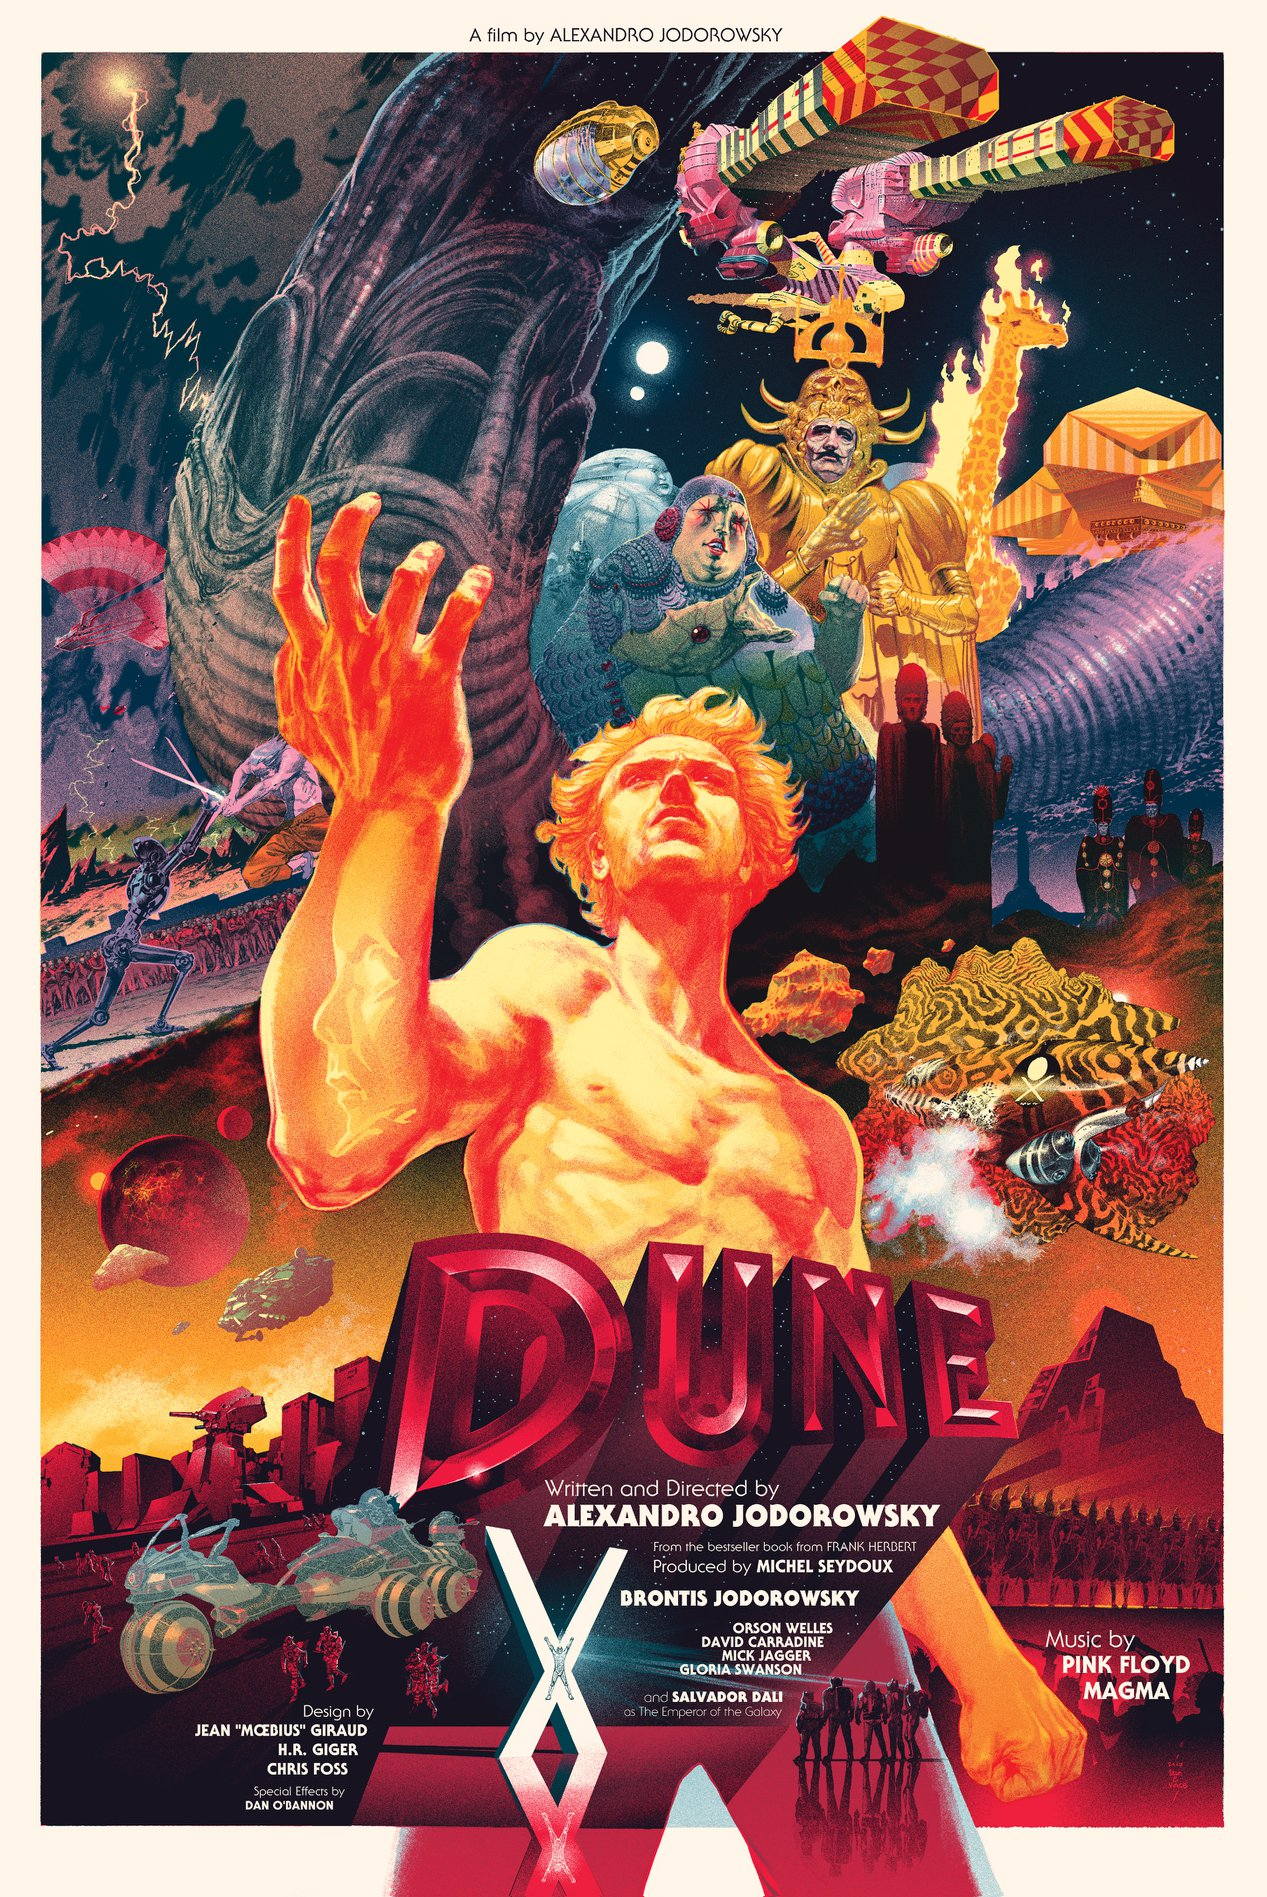 a review of dune Variety gave dune a less negative review, stating dune is a huge, hollow, imaginative and cold sci-fi epic visually unique and teeming with incident.